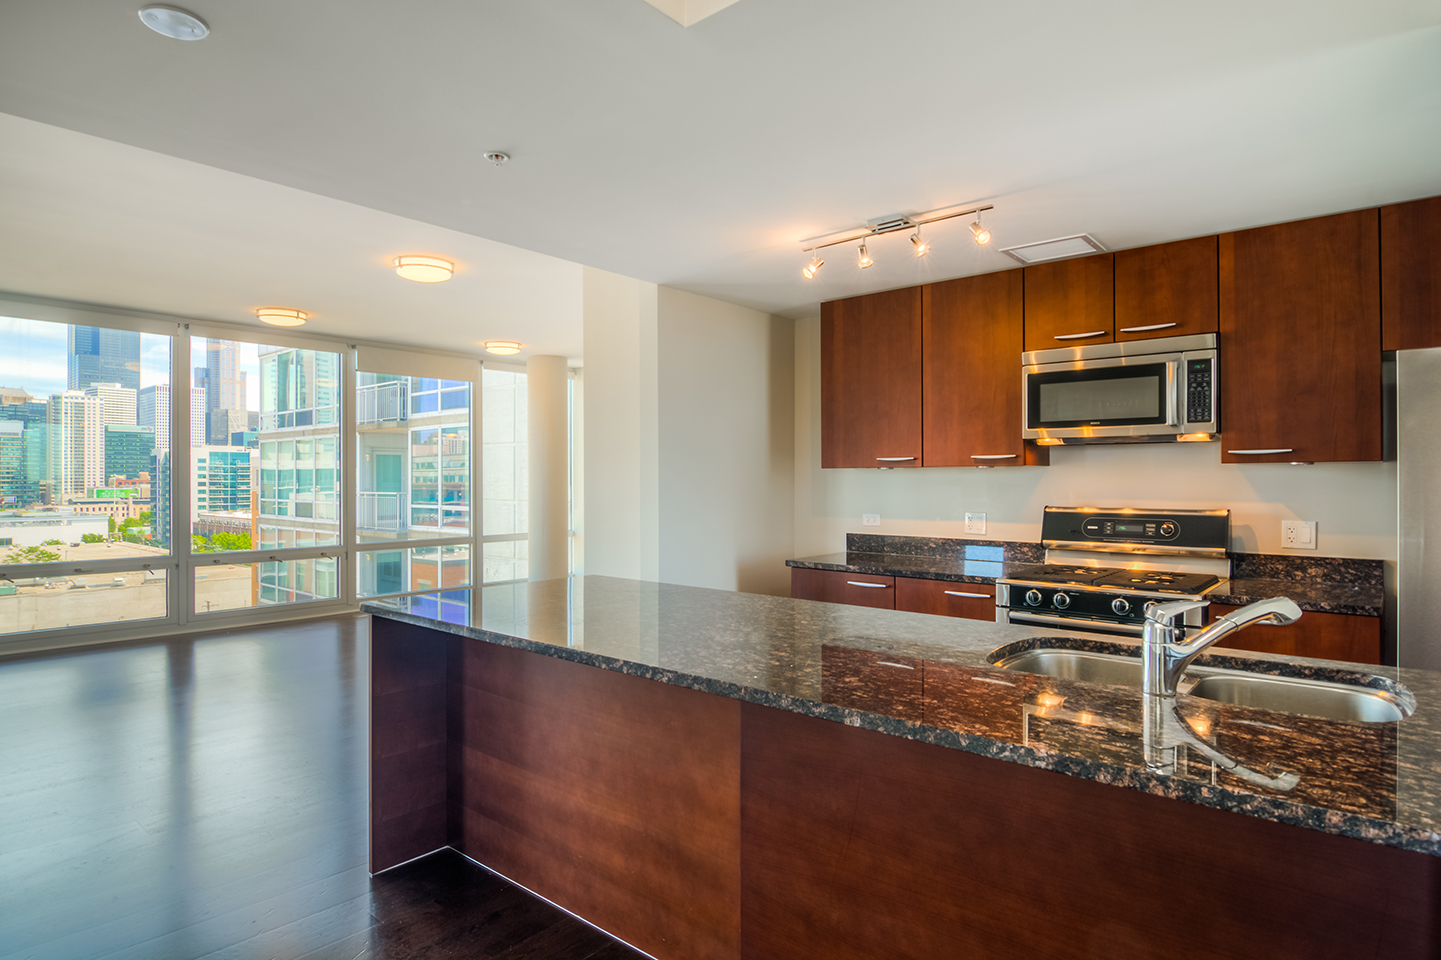 Stainless Steel Appliances at 24 S Morgan Apartments, 24 S. Morgan St., 60607